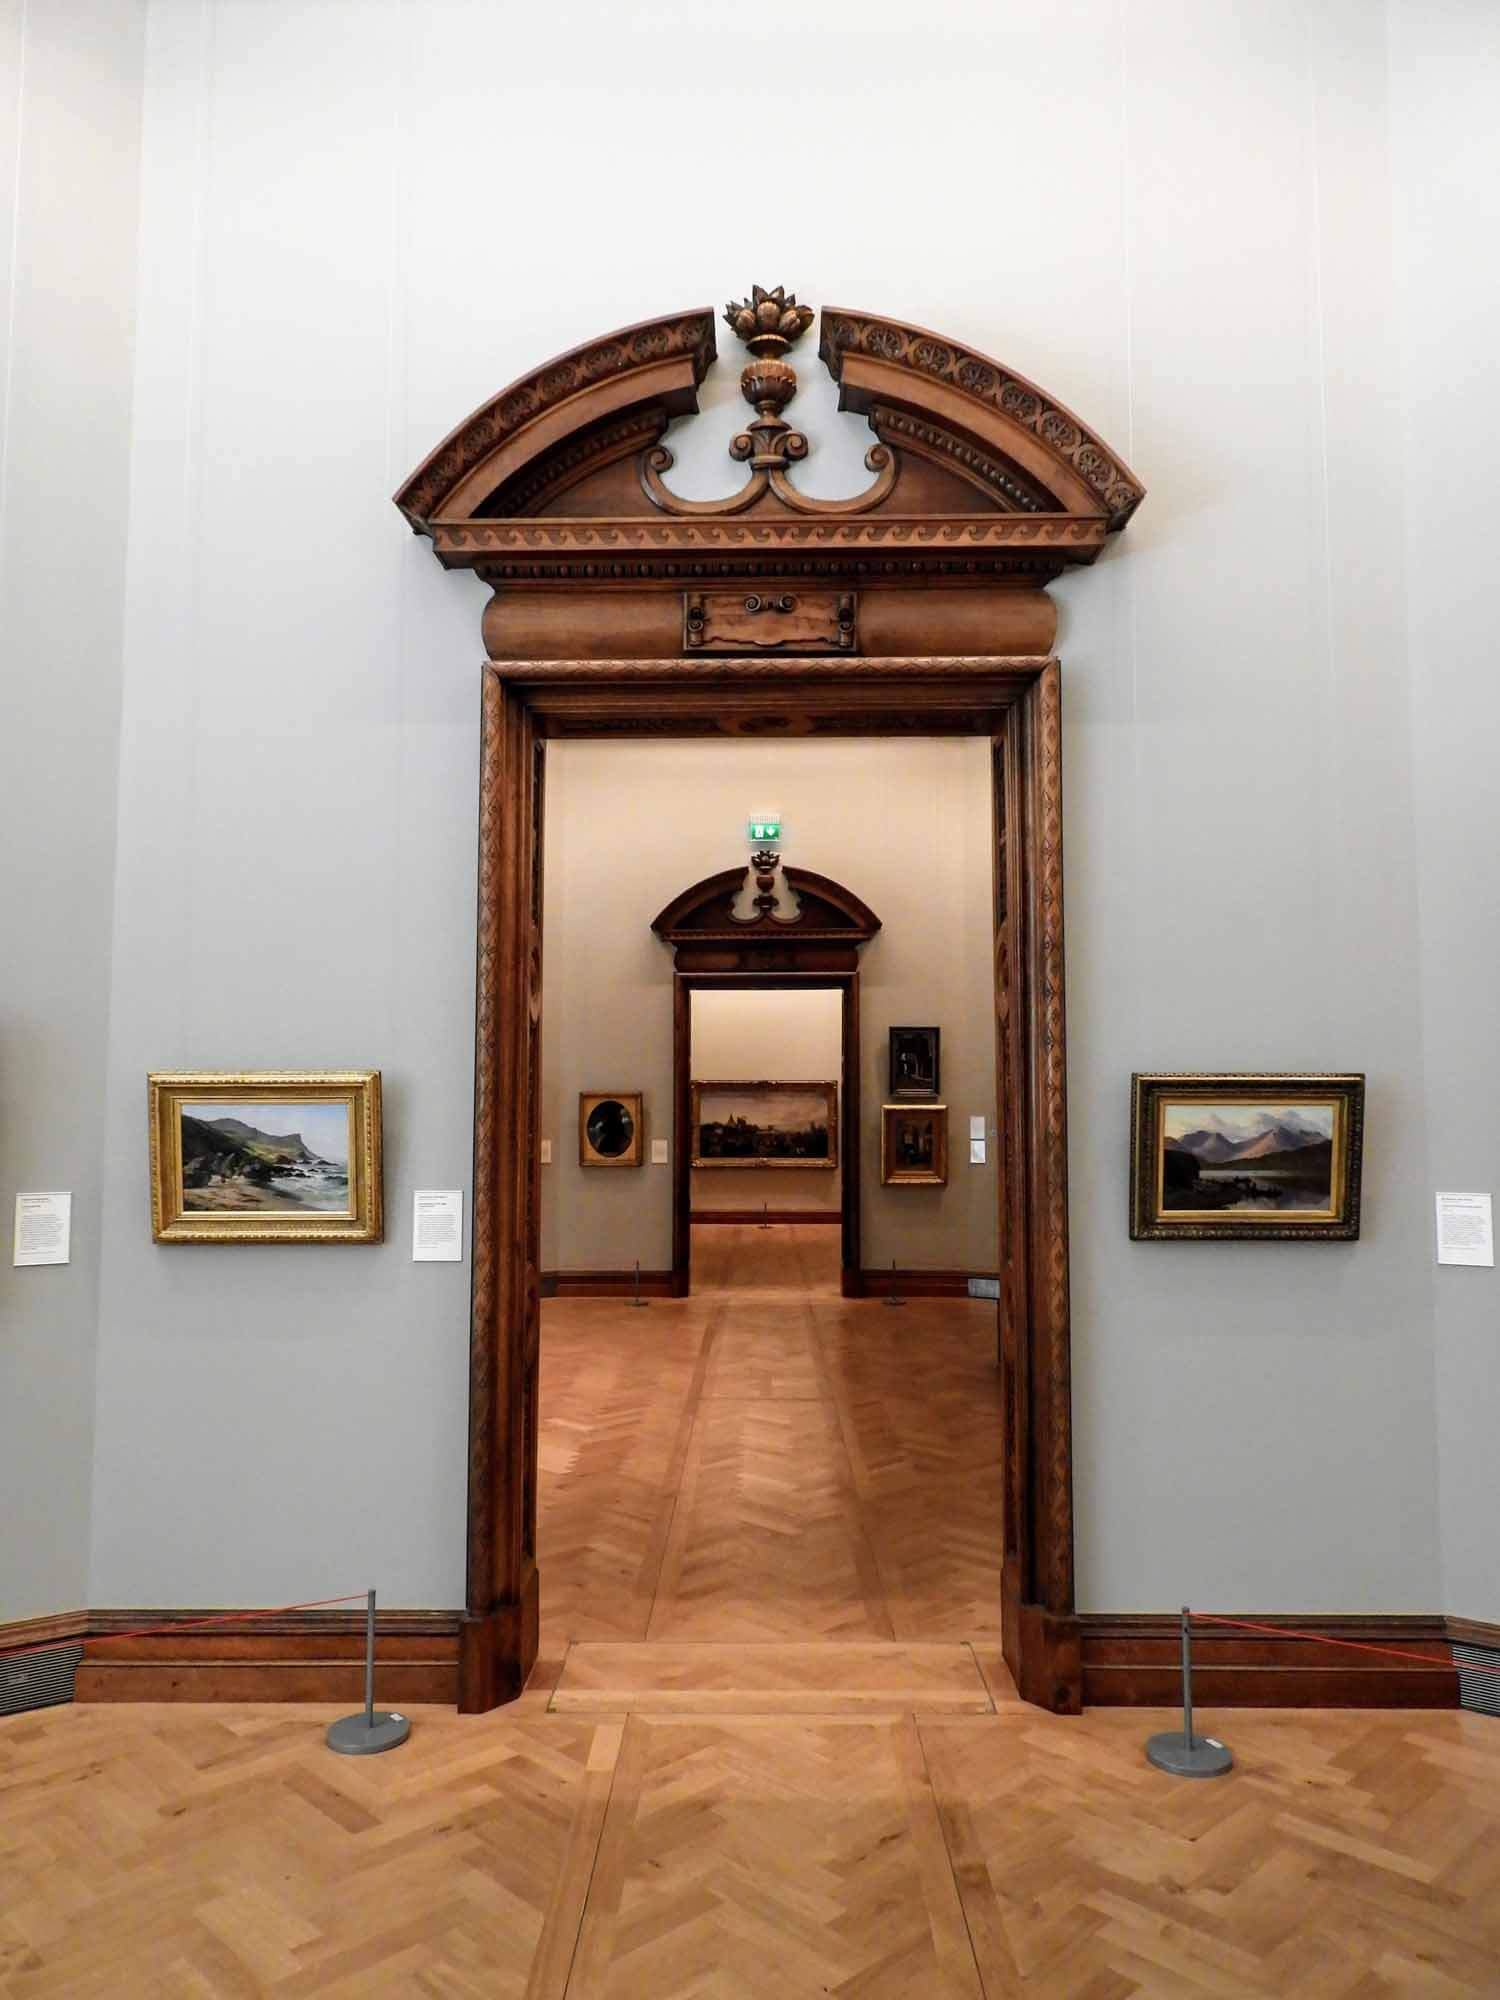 ireland-dublin-national-gallery-doorway-wood-molding-art.jpg